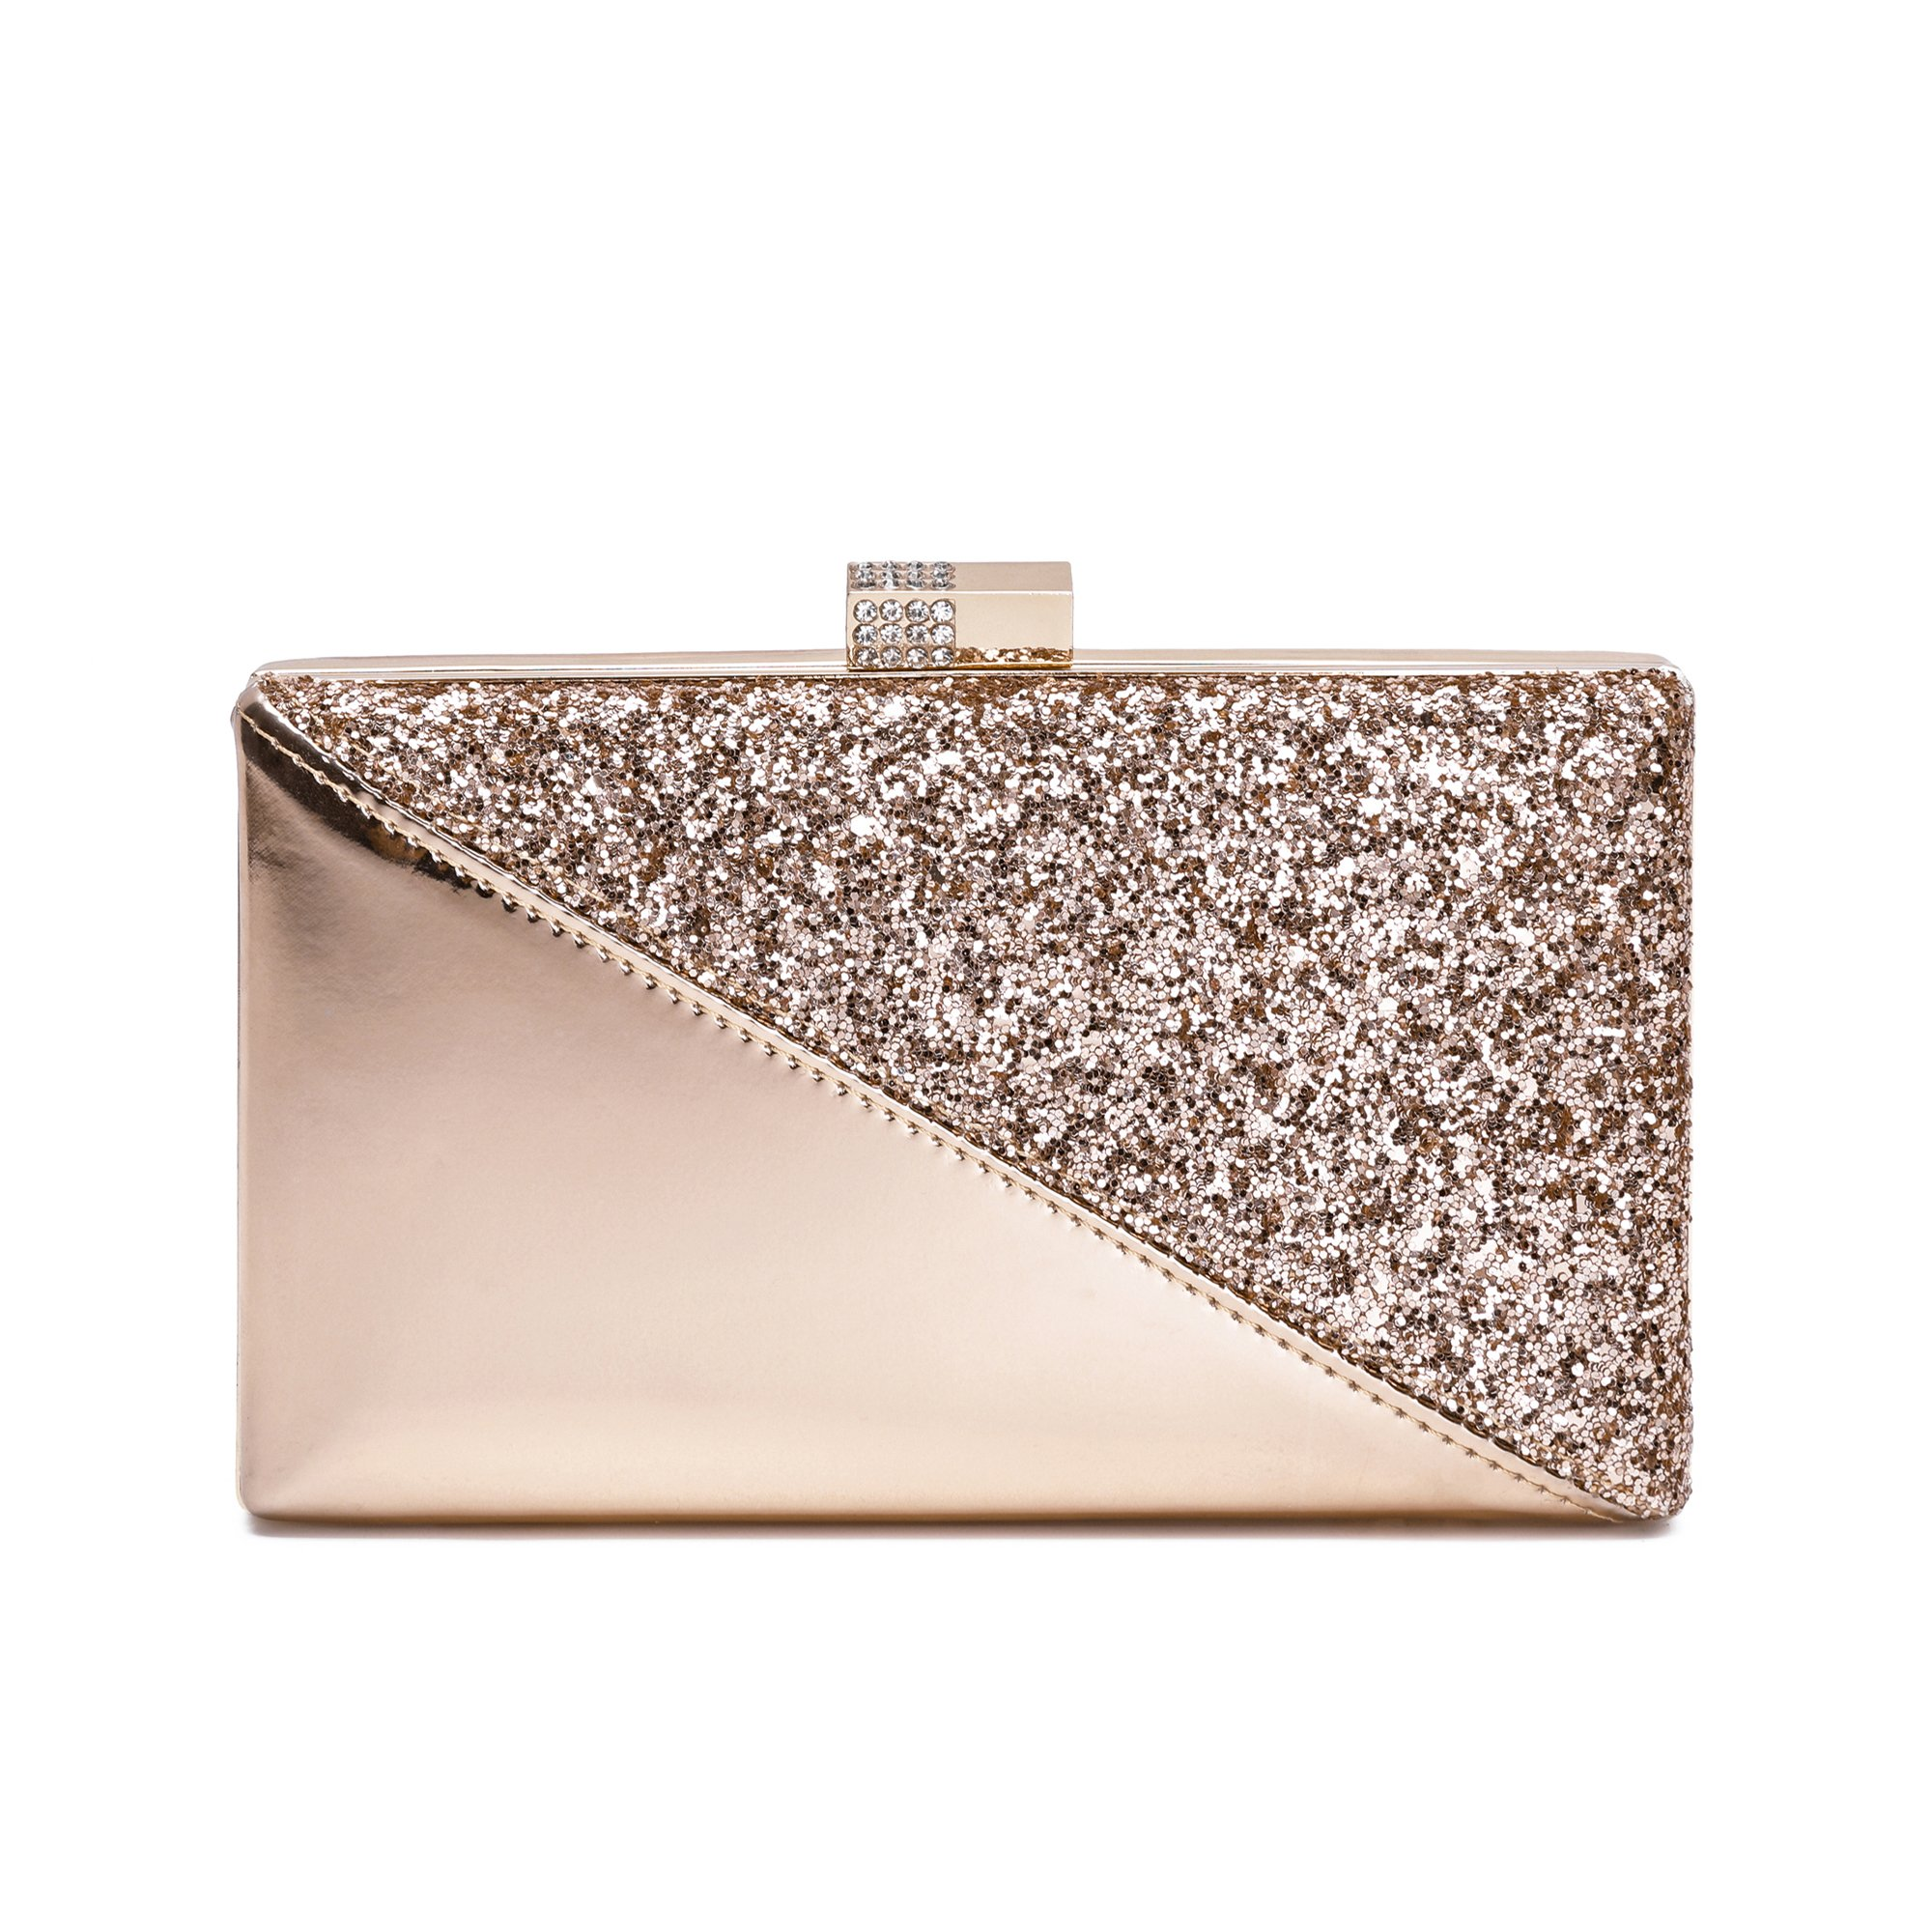 Sparkling Clutch Purse Elegant Glitter Evening Bags Bling Evening Handbag For Dance Wedding Party Prom Bride (Champagne)